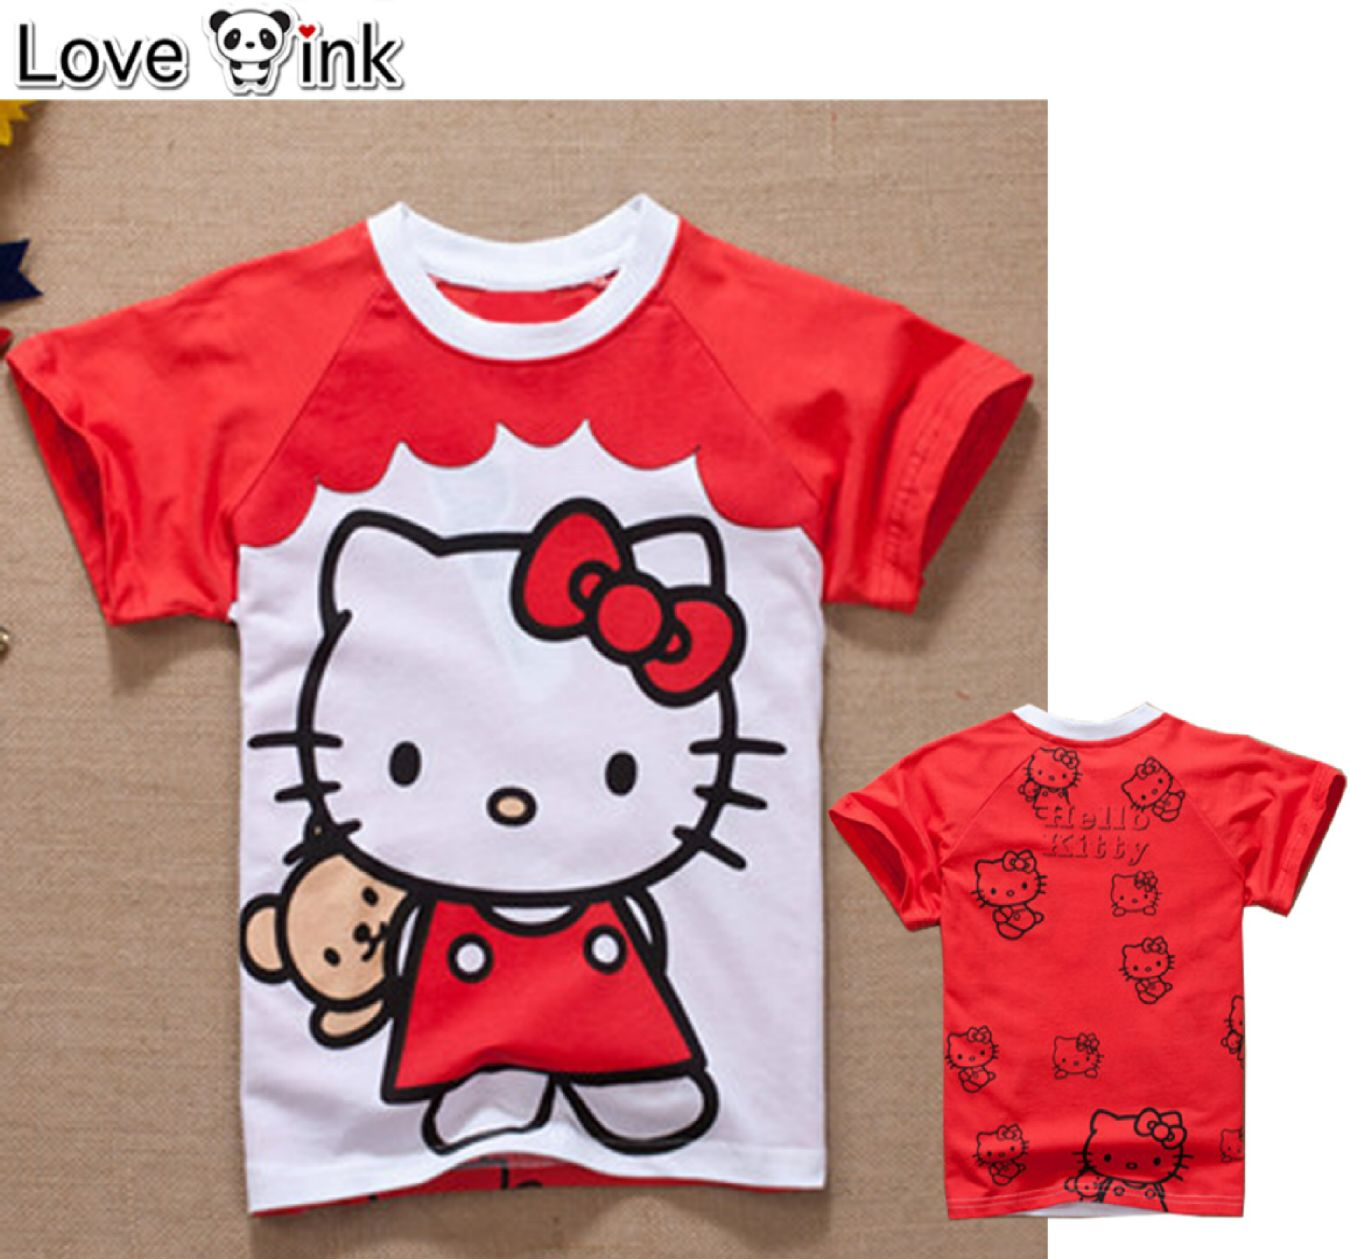 KSKD47 - Kaos Atasan Anak Red Hello Kitty and The Doll Murah